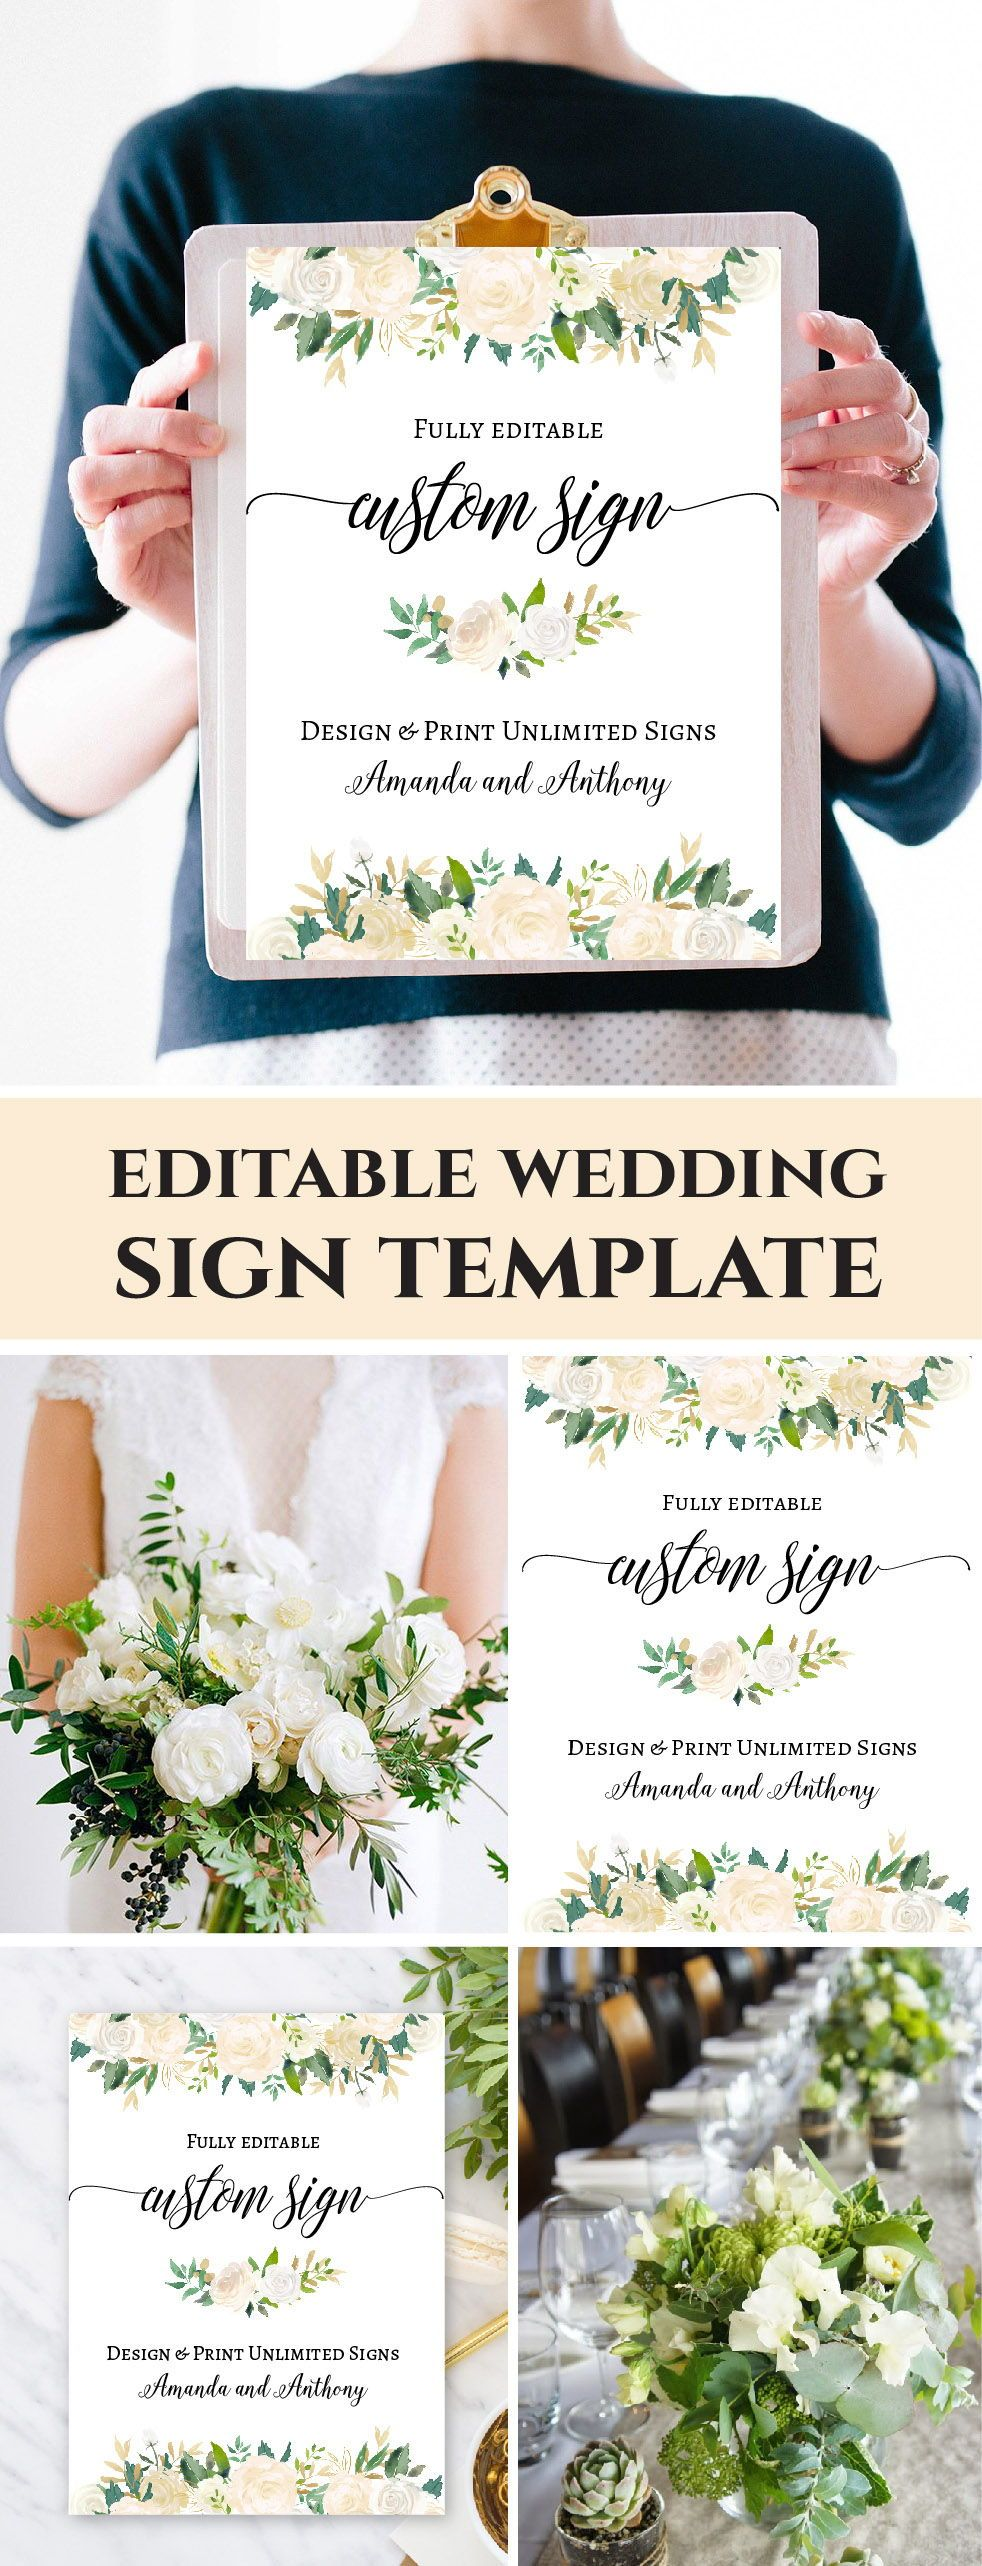 Custom Wedding Sign Template Fl Party Printable Signage Unlimited Signs Instant 18x24 F6